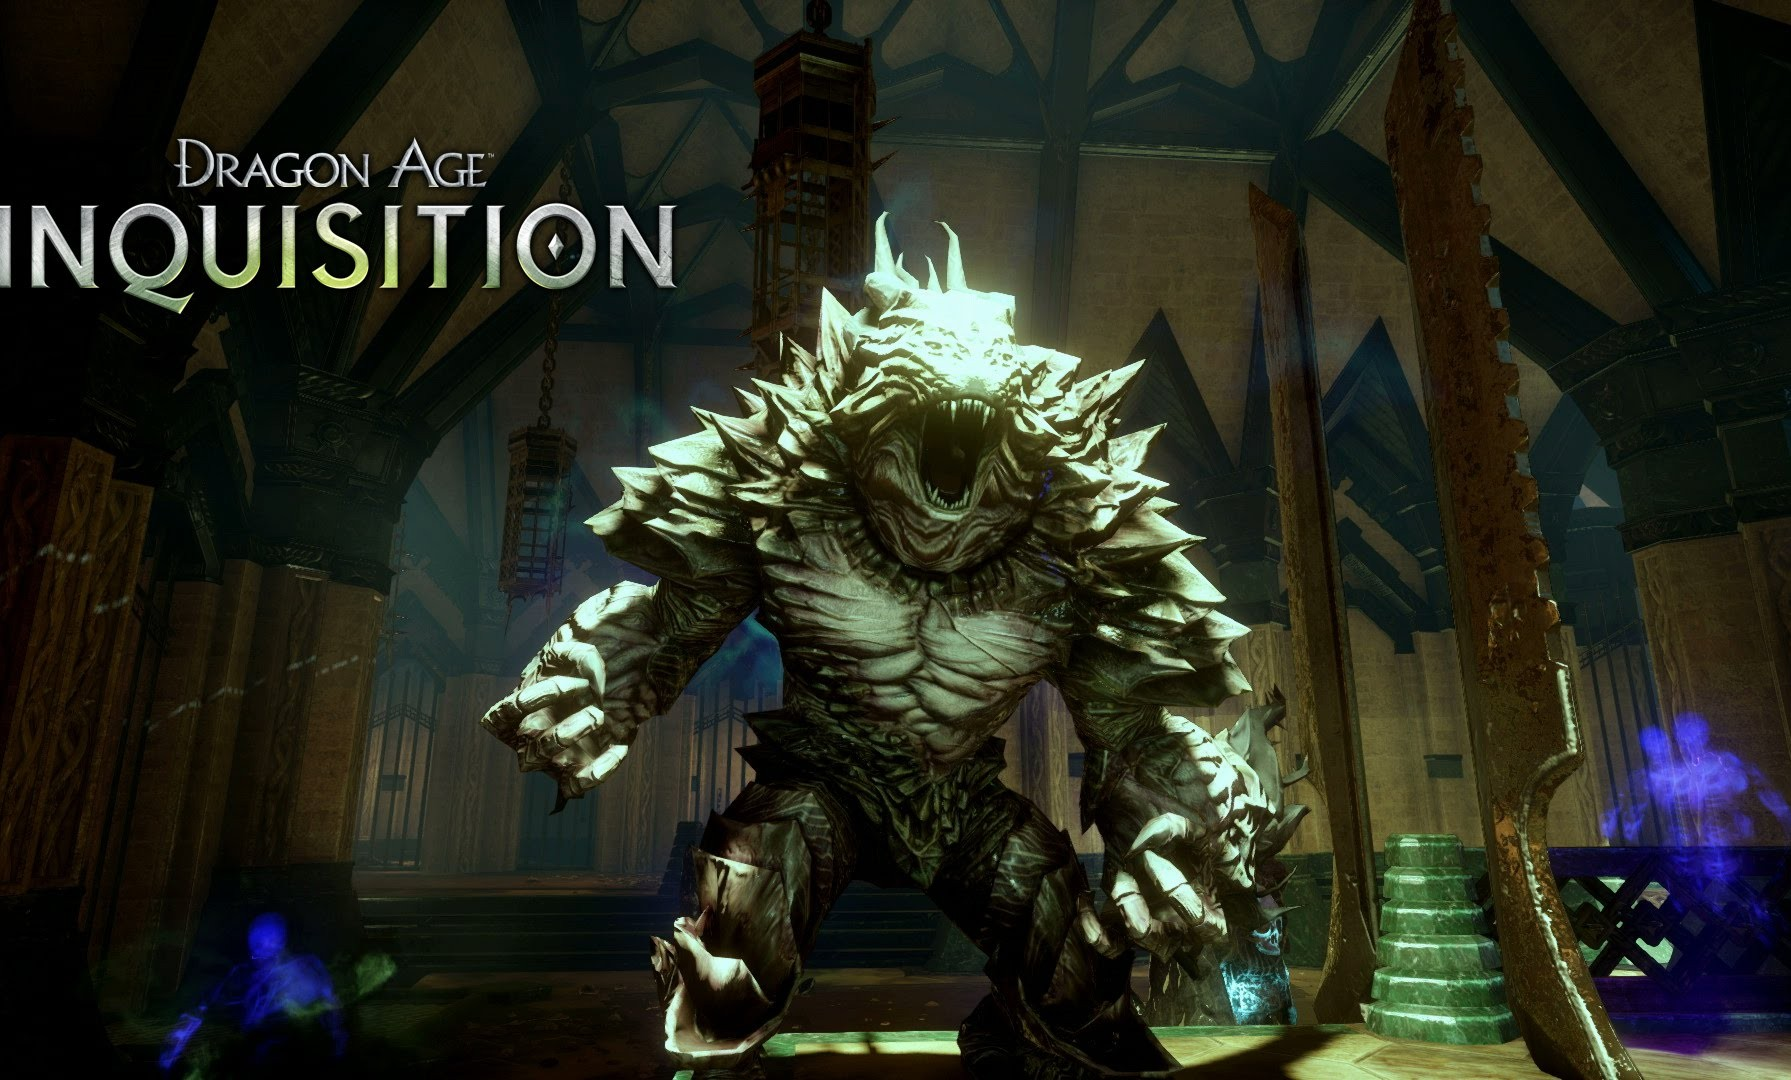 EL MULTIJUGADOR DE DRAGON AGE: INQUISITION